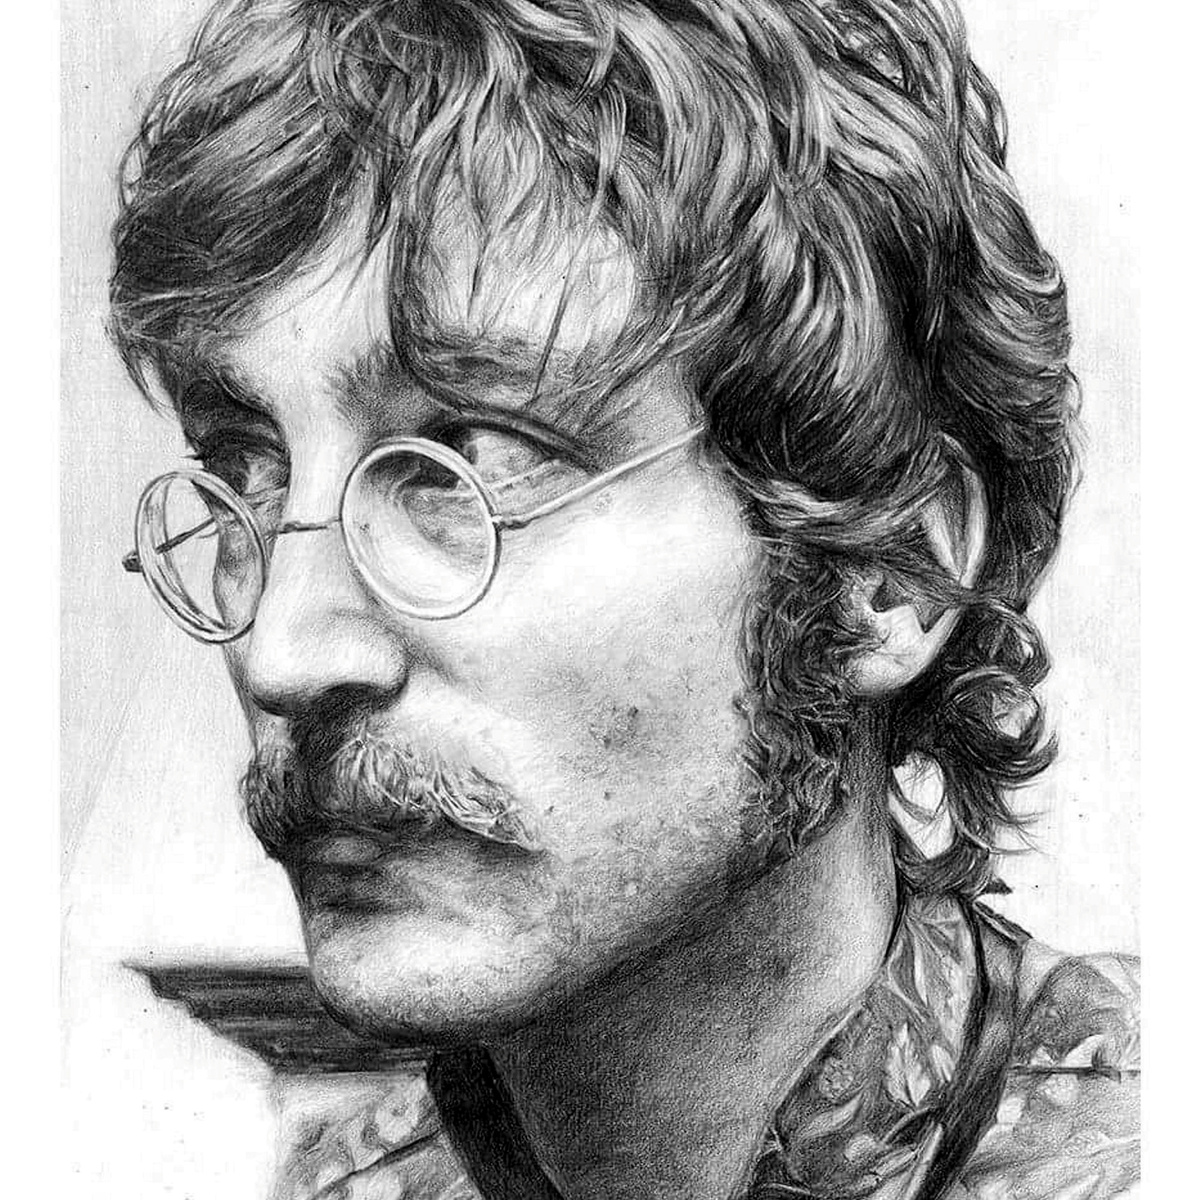 SWNS BEATLES DRAWINGS 04 Former Model Now Creates Incredible Photo Real Portraits Using Pencil